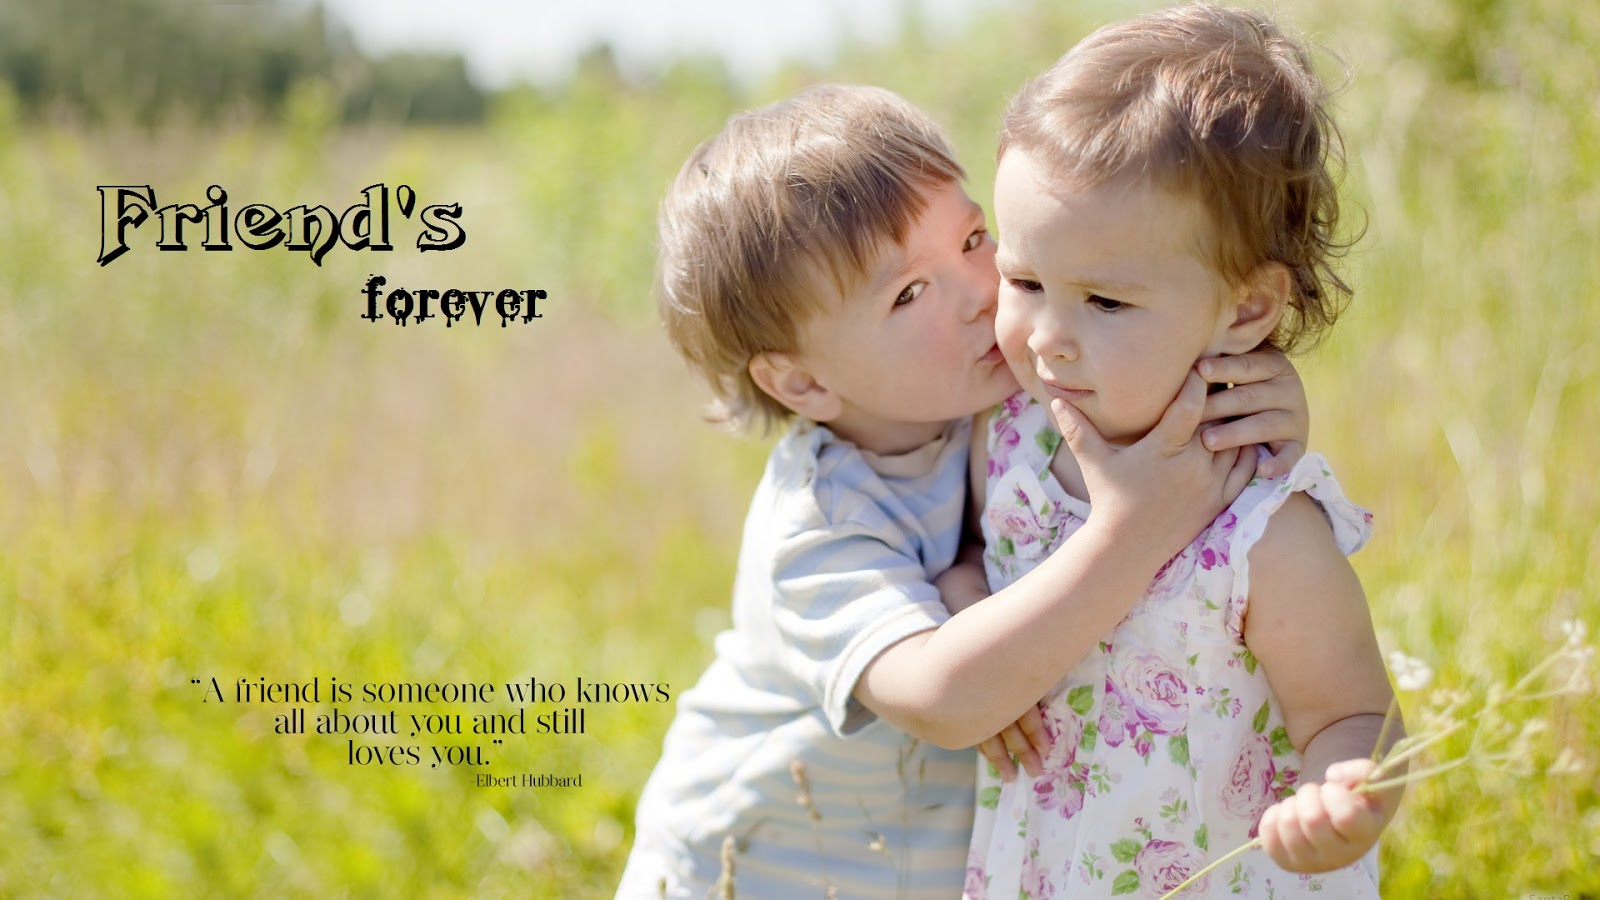 Khushi for life sexy kissing photo of cute baby on friendship day see all beautiful friendship day photo gallery send e cards images graphics and animation to your beloved ones on your favorite social networking sites kristyandbryce Images